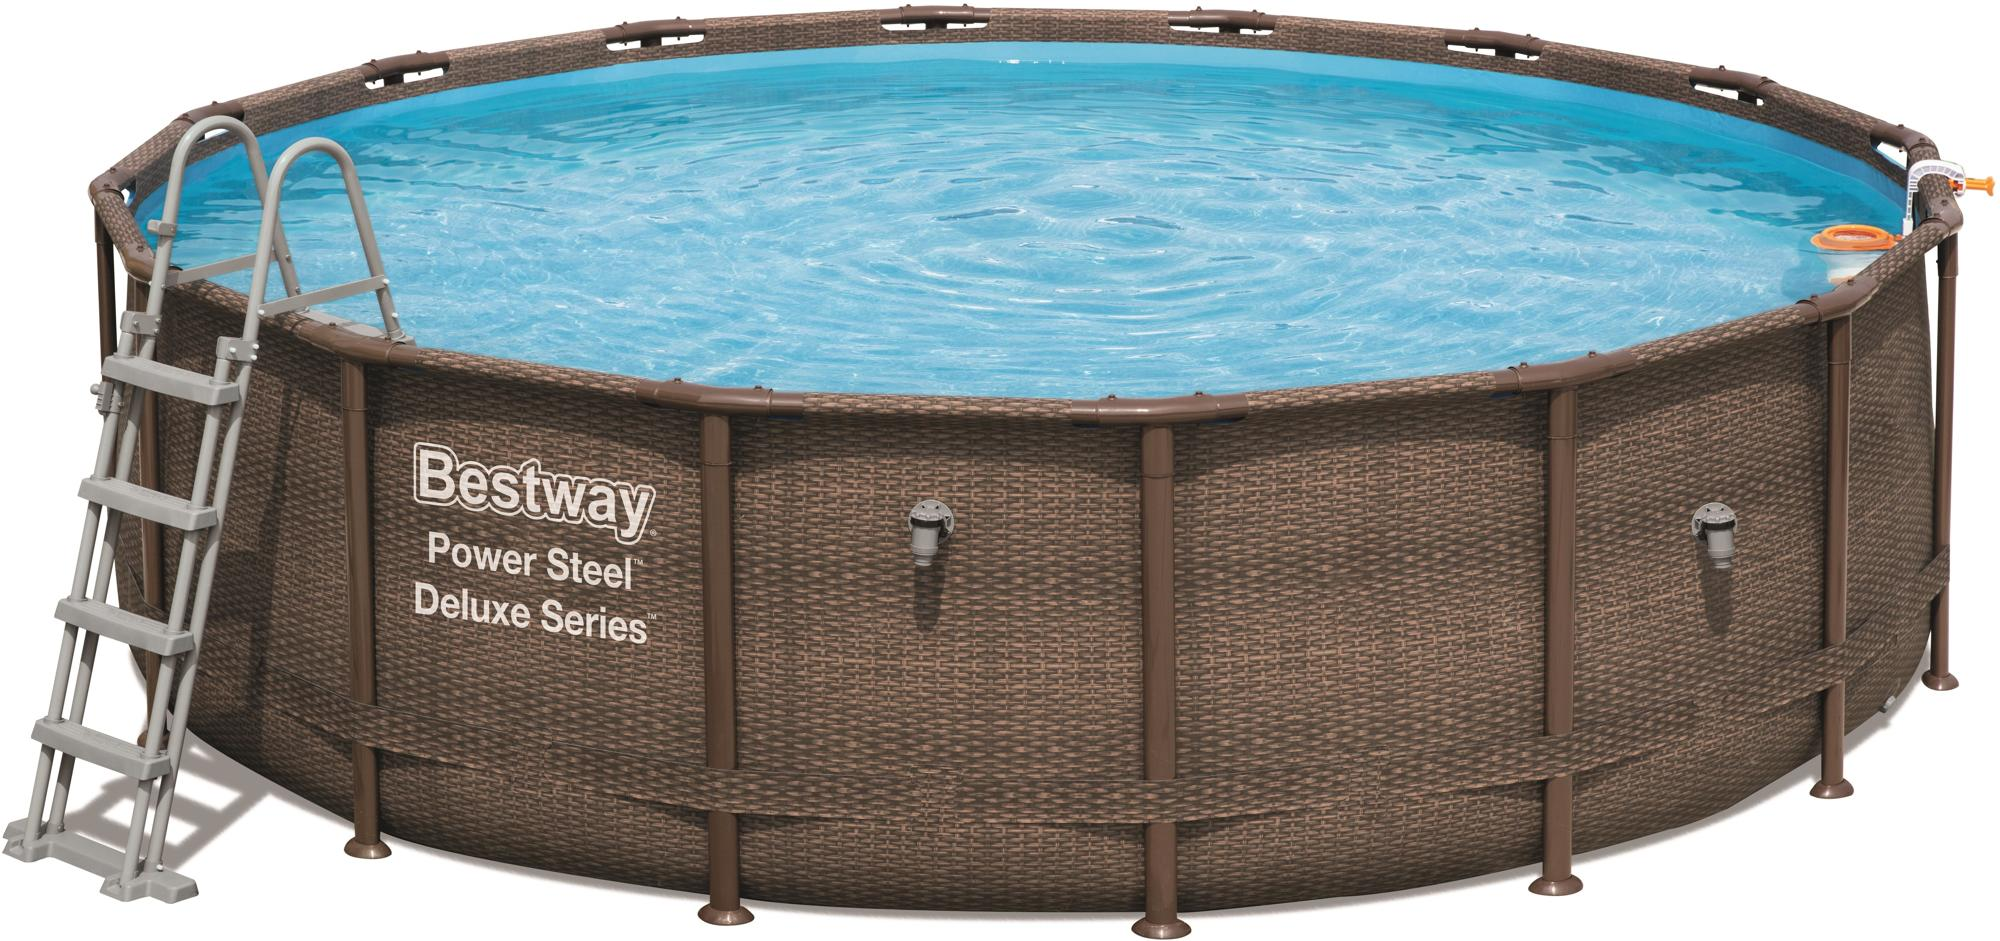 Top Bestway Power Steel Deluxe Series Frame Pool, Komplett-Set, rund PA06